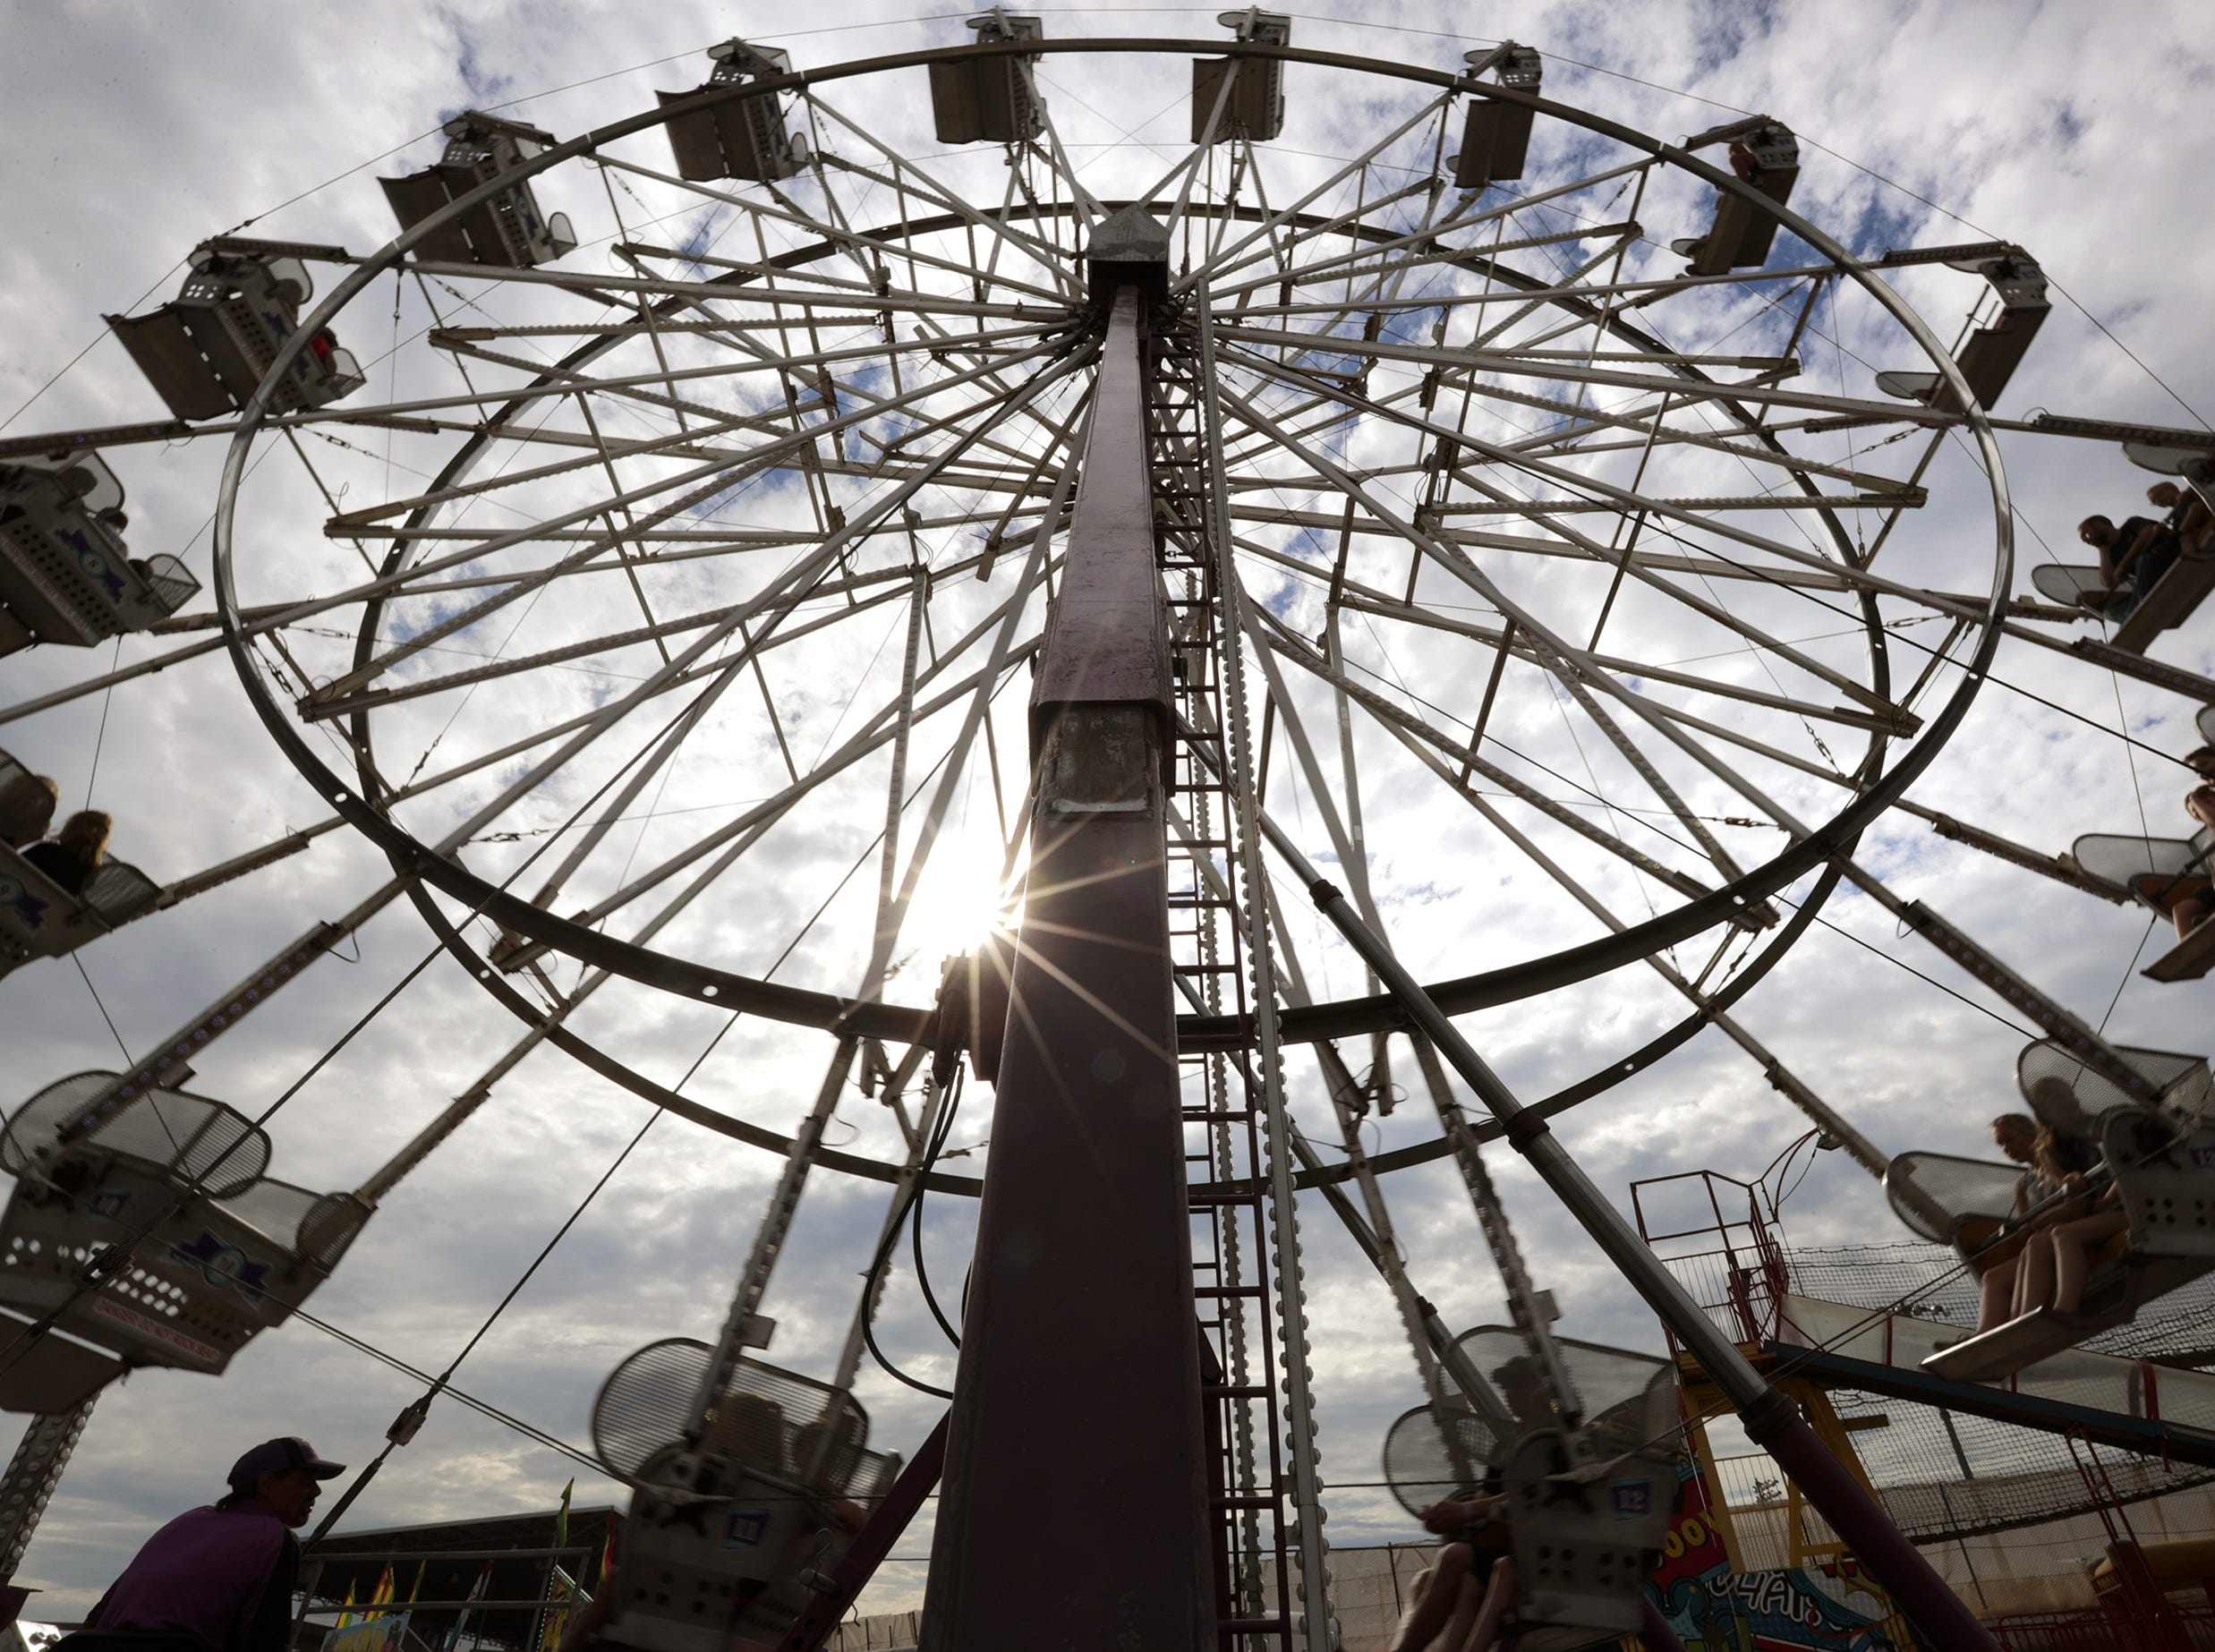 The Outagamie County Fair on Wednesday, July 25, 2018 in Seymour, Wis. Wm. Glasheen/USA TODAY NETWORK-Wisconsin